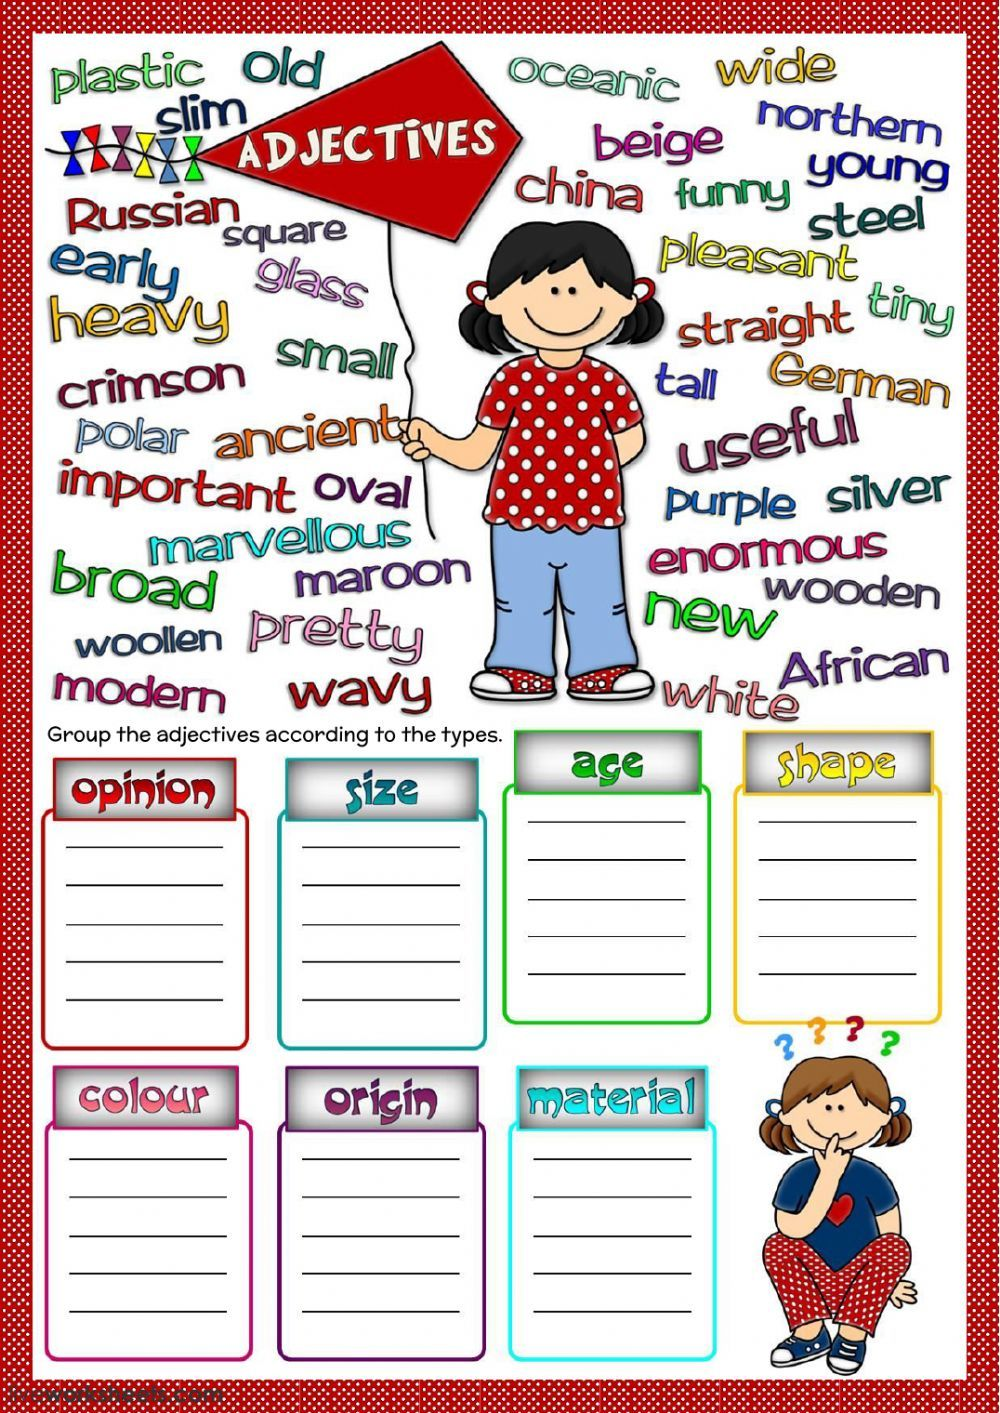 Adjectives Interactive And Downloadable Worksheet You Can Do The Exercises Online Or D Parts Of Speech Worksheets English As A Second Language Parts Of Speech